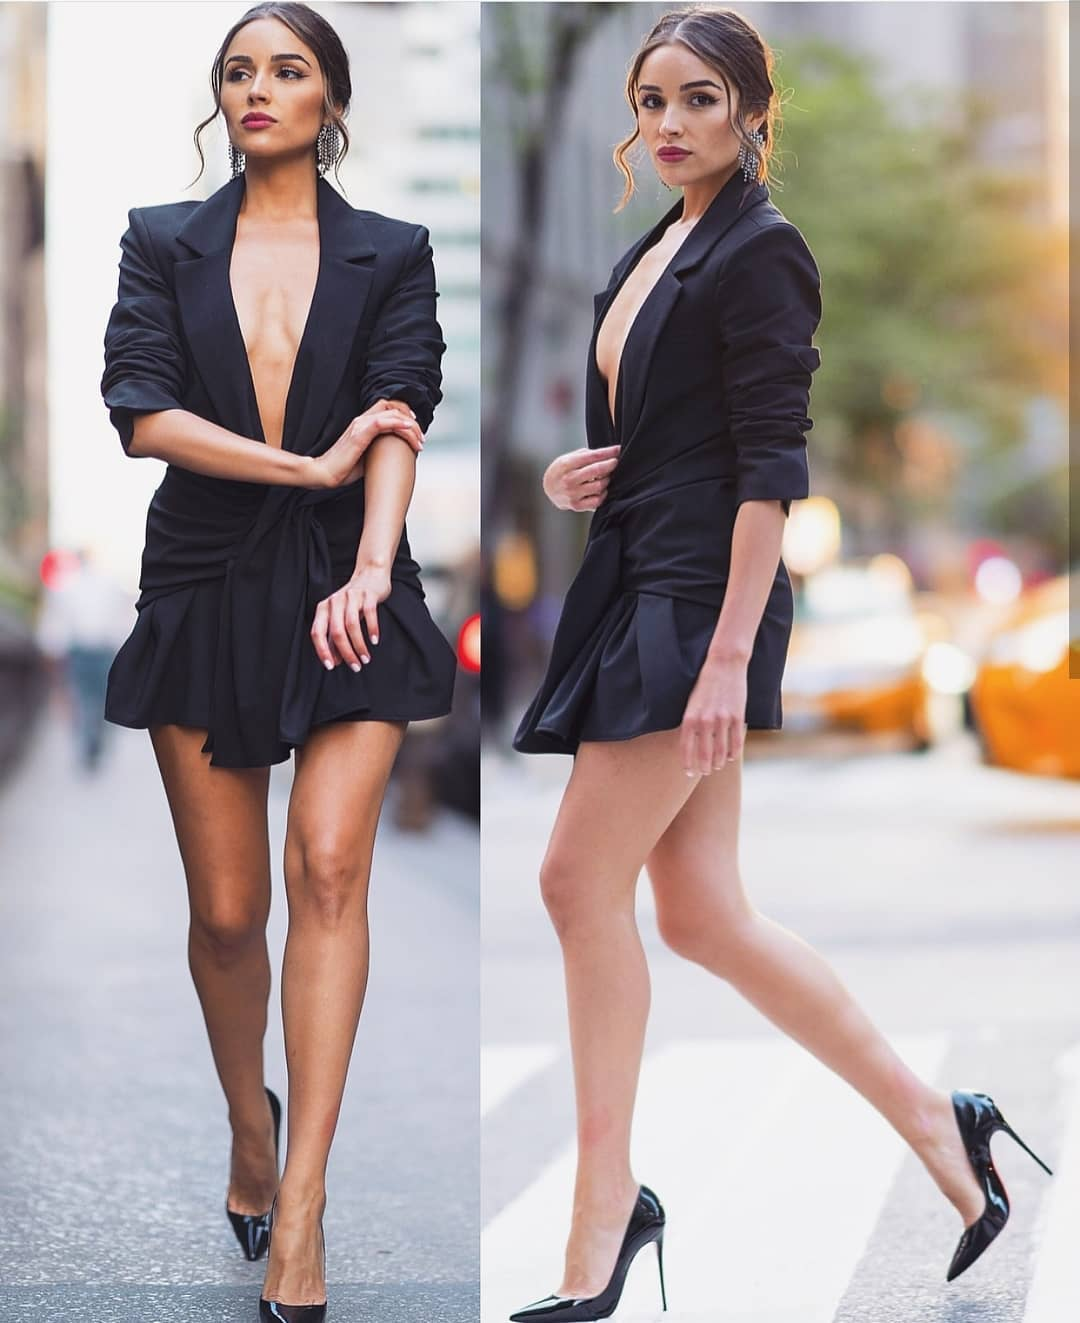 Black Blazer-Dress For Young Ladies To Try This Summer 2020